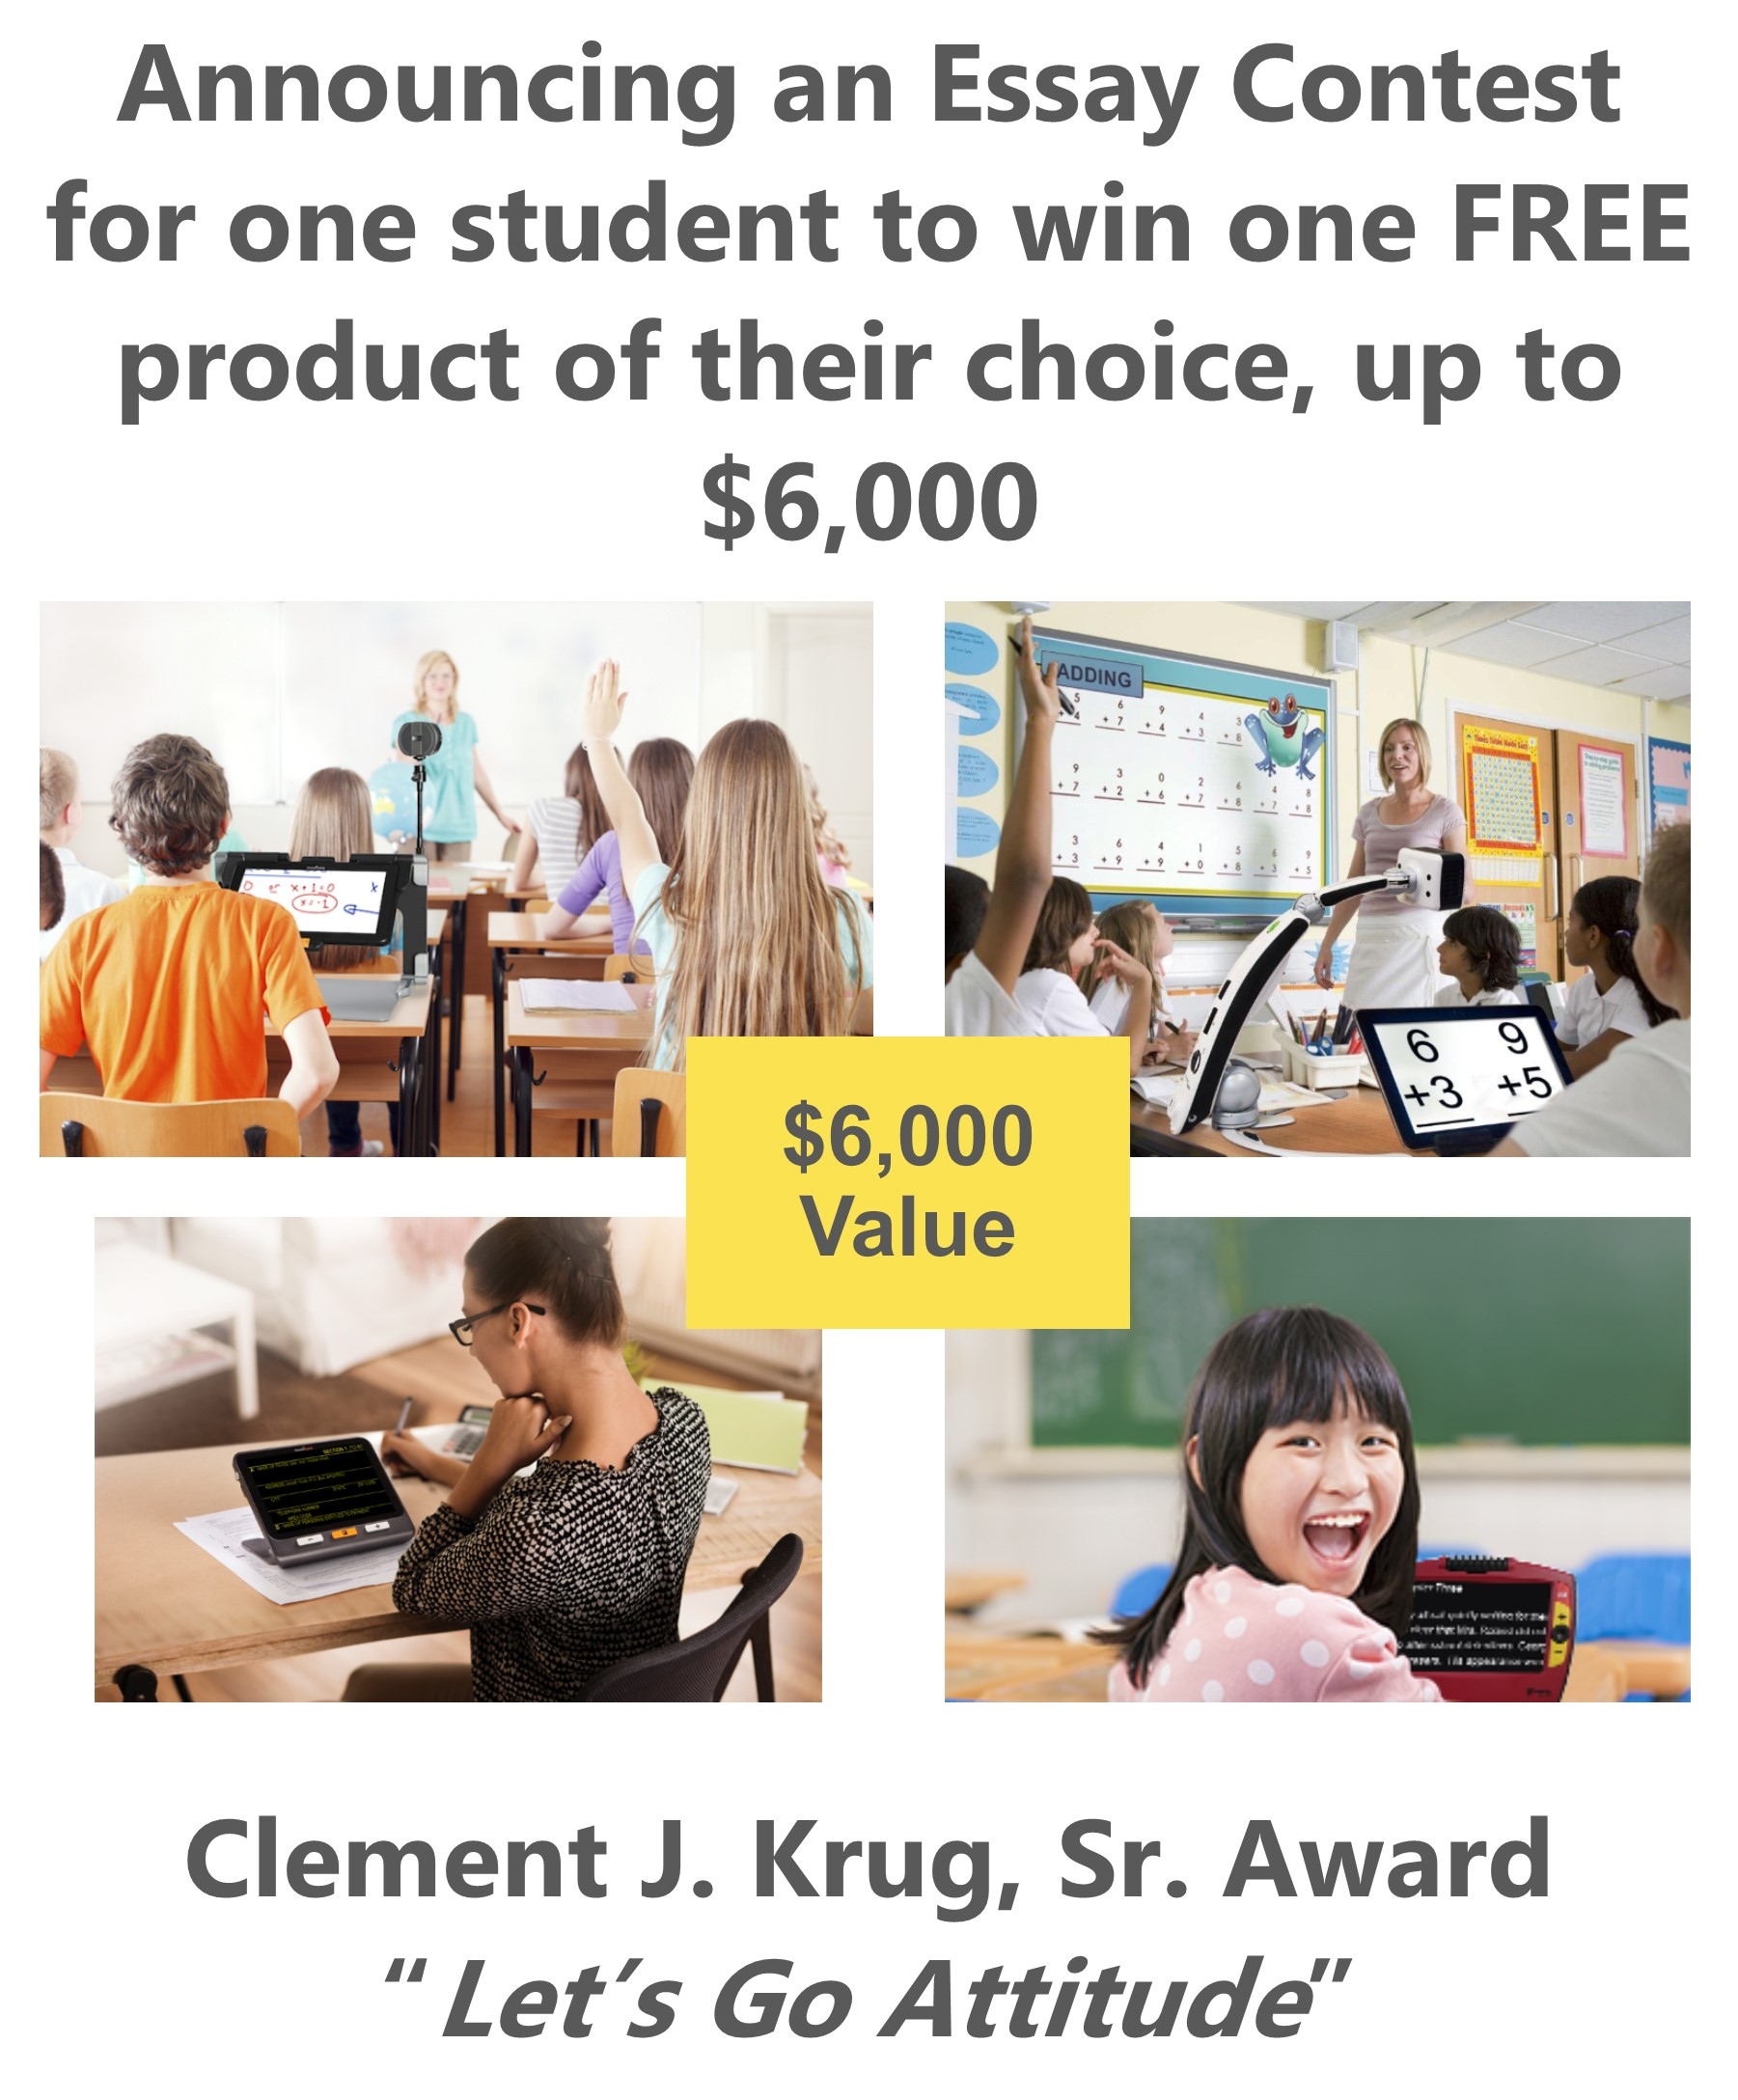 Clement J. Krug, Sr. Award Announcements News